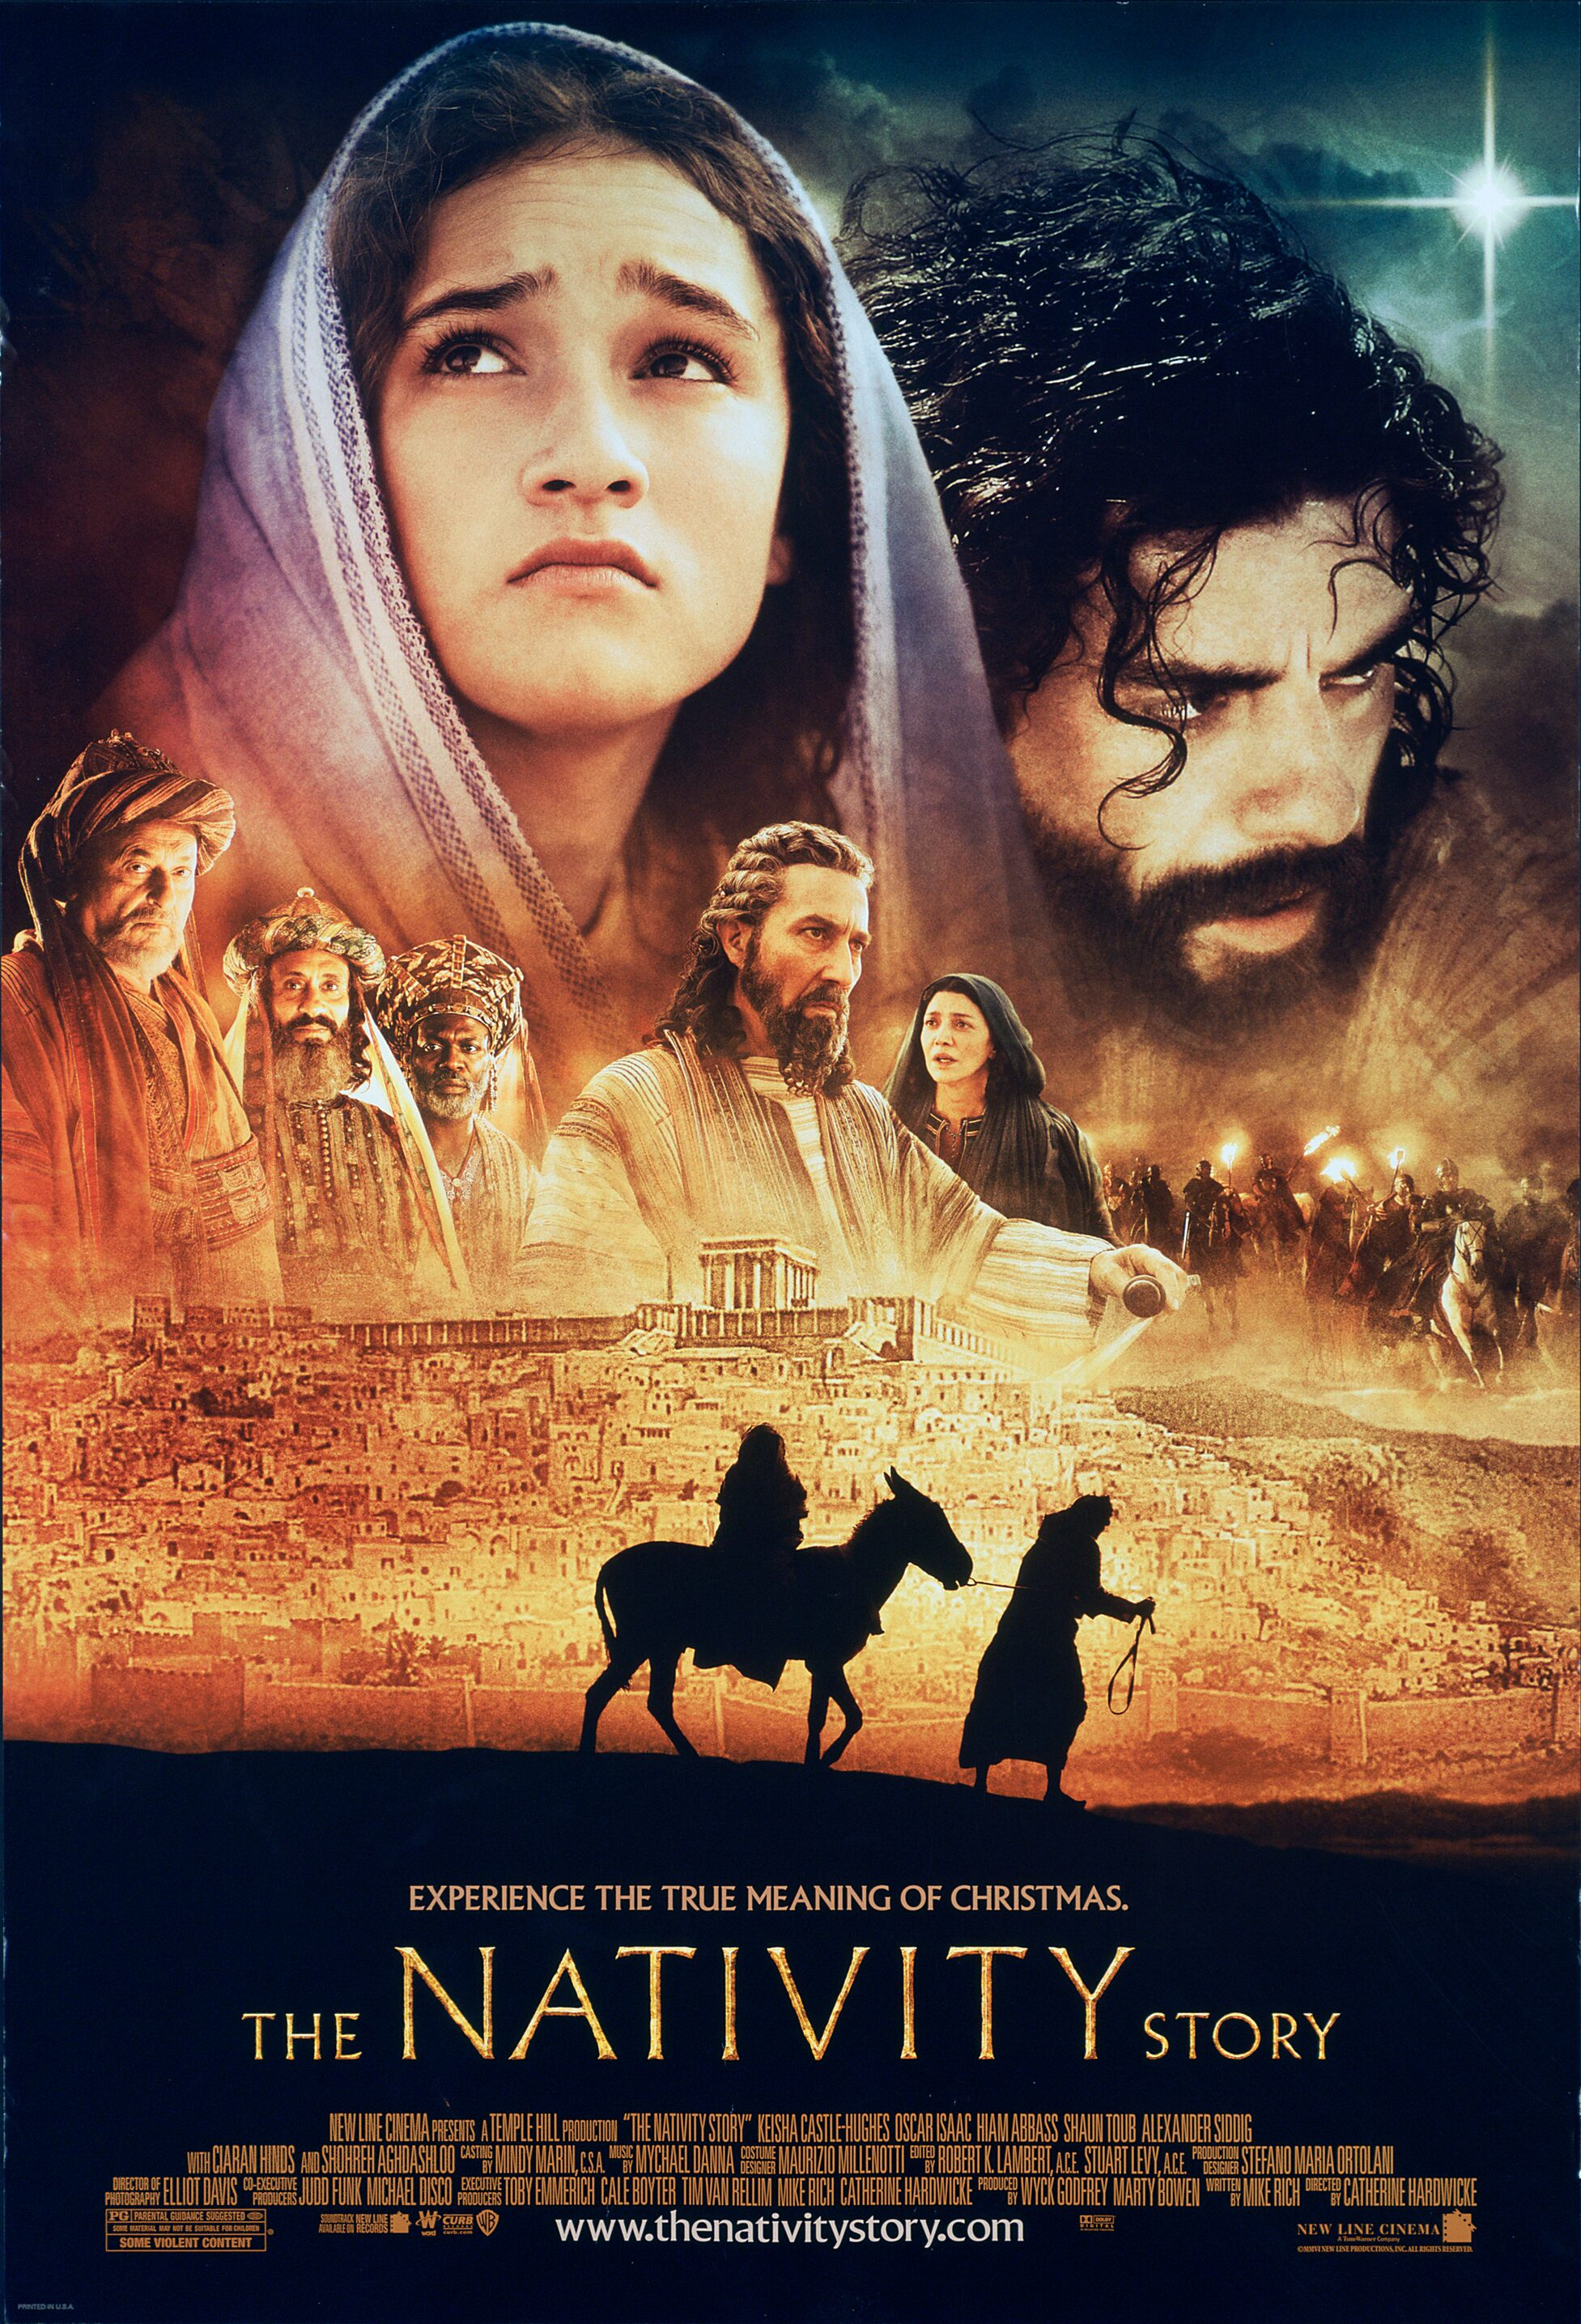 Movie Poster - The Nativity Story